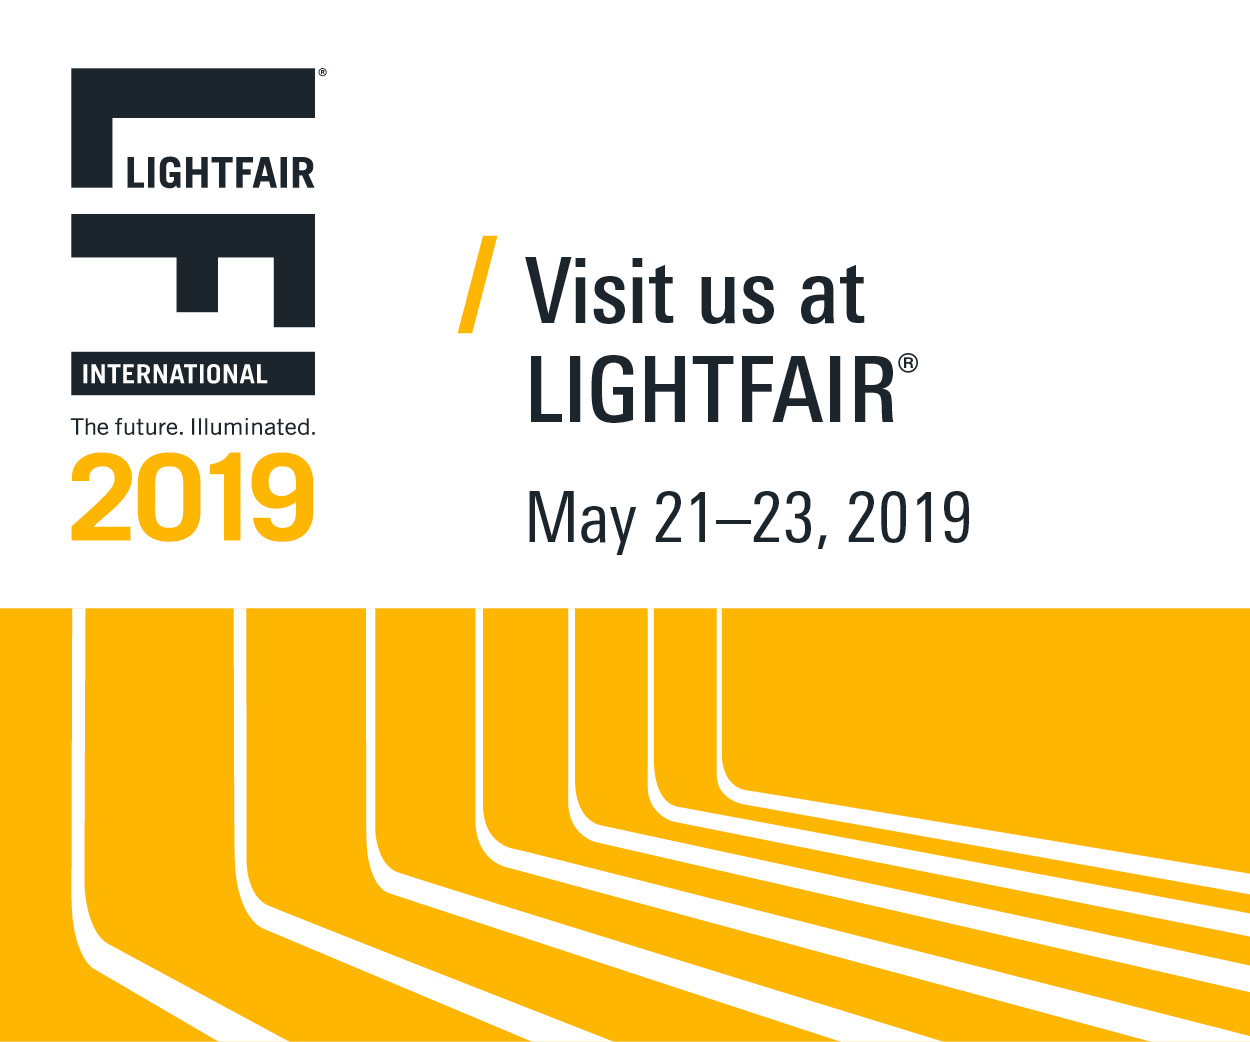 Lightfair Logo